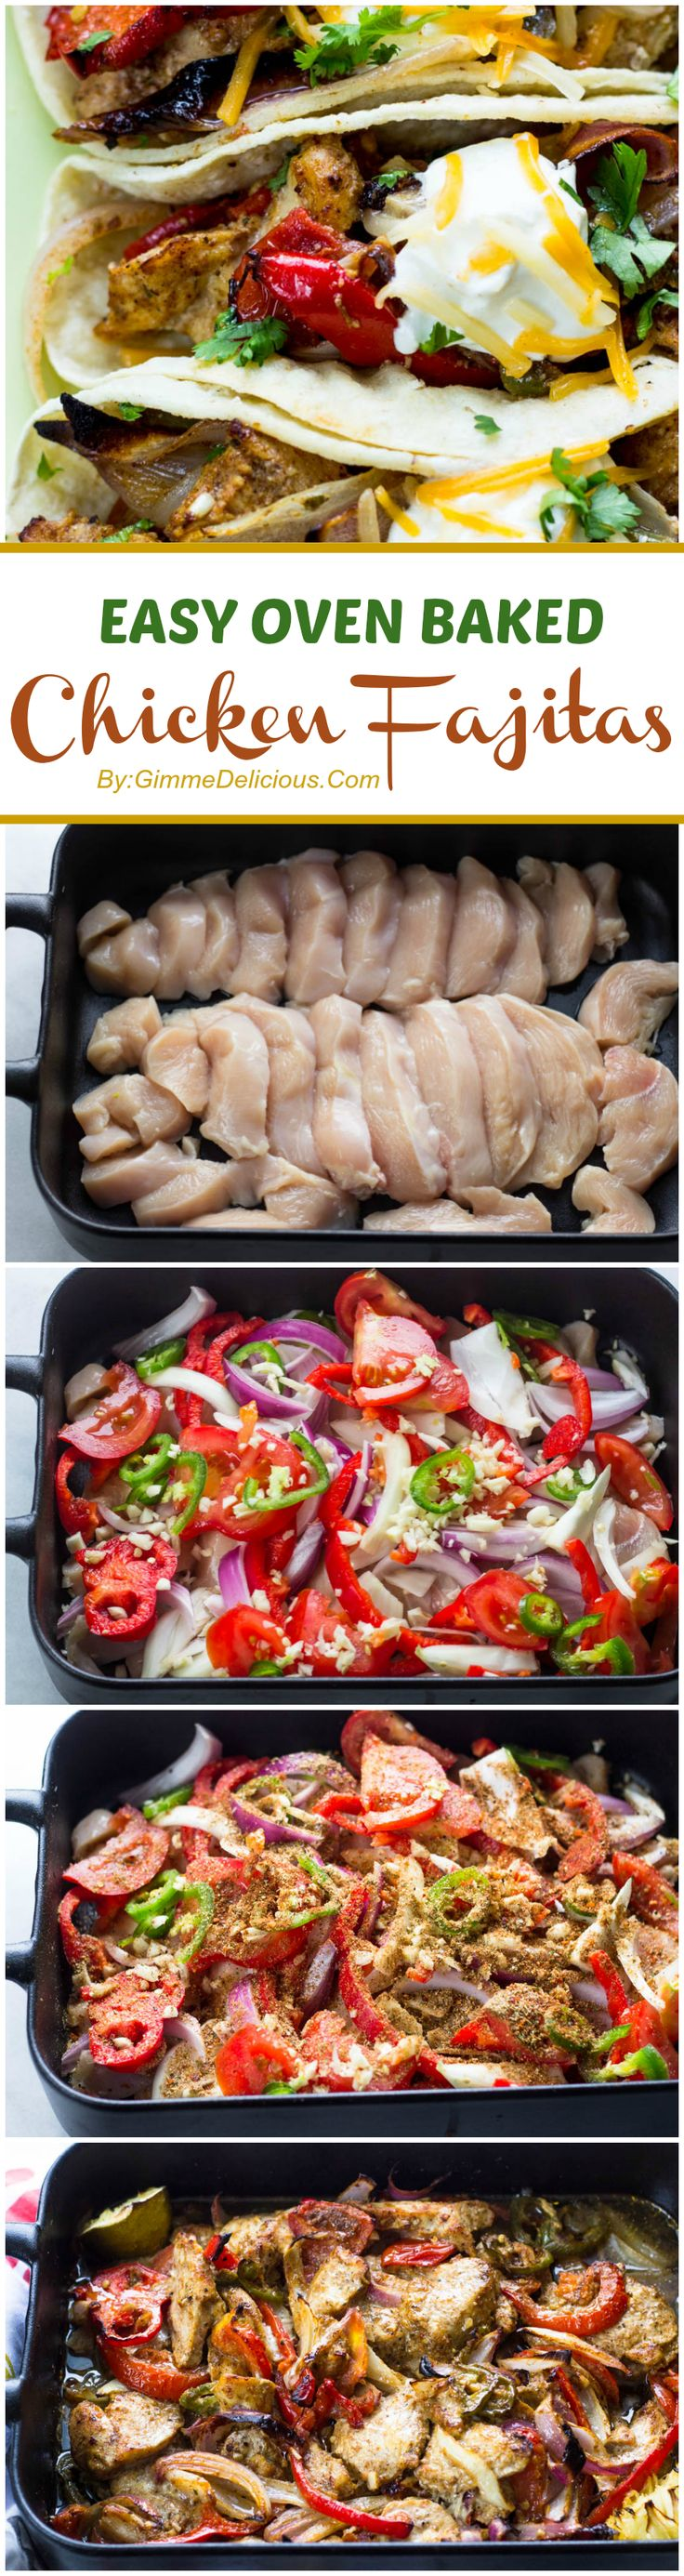 #YUMMY and EXTREMELY EASY: Oven Baked Skinny Chicken Fajitas Recipe!!!   ~XOX  #MomAndSonCookingTeam